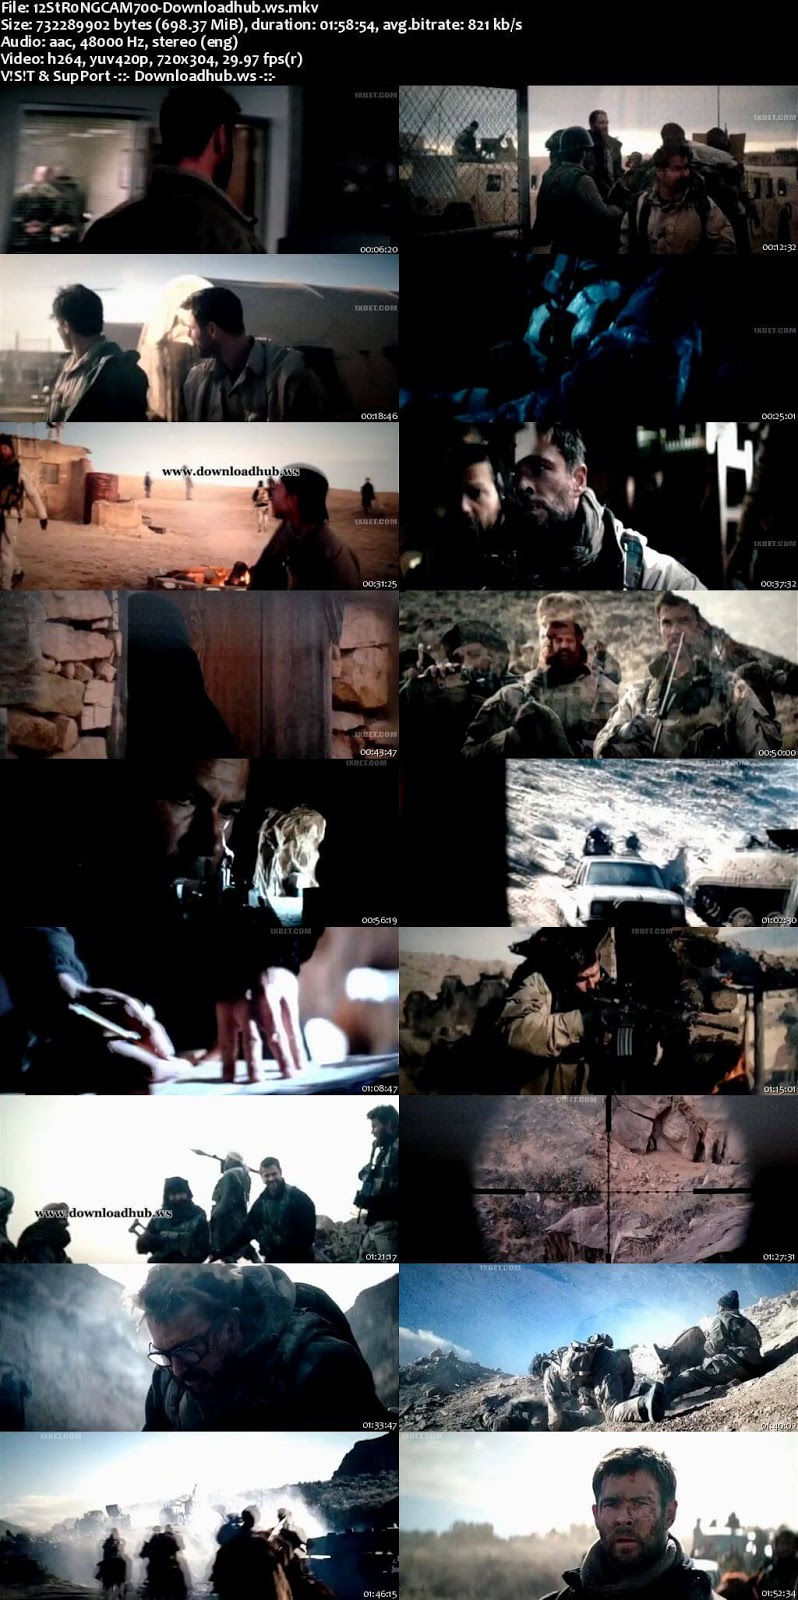 12 Strong (2018) 700MB HDCAM x264 AAC - Downloadhub Movcr | Download